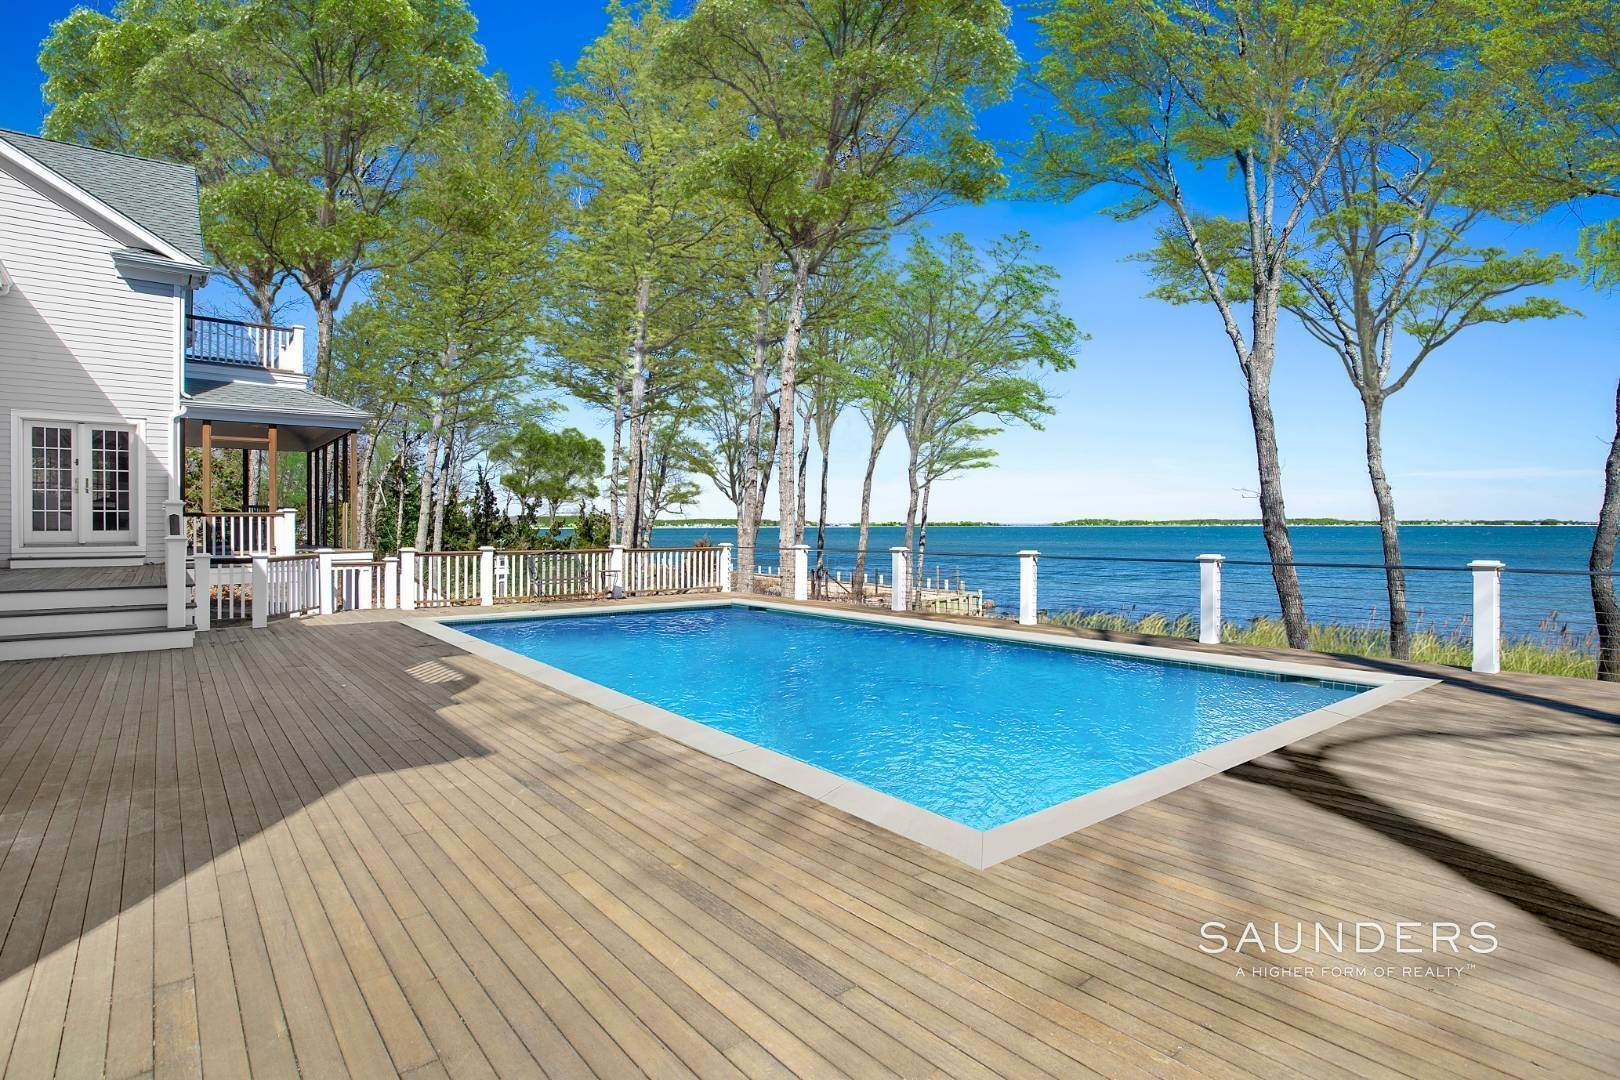 5. Single Family Homes for Sale at Shelter Island Gardiners Bay Beach House With Pool 72 Gardiners Bay Drive, Shelter Island Heights, Shelter Island, NY 11964